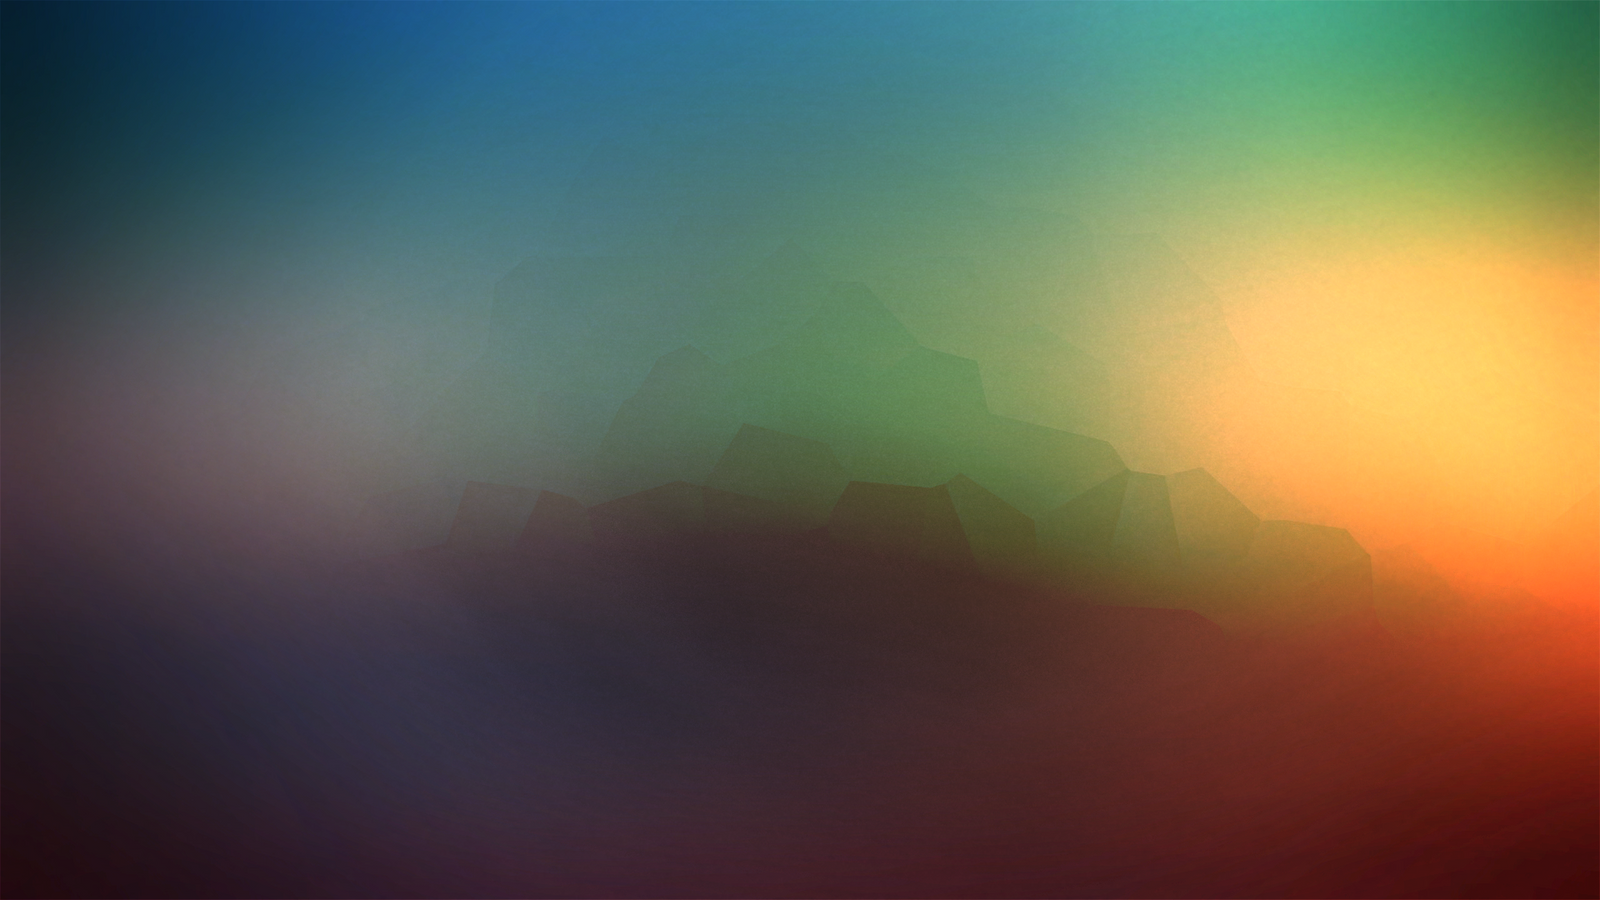 mountains minimal wallpaper by skyehunter5 on deviantart